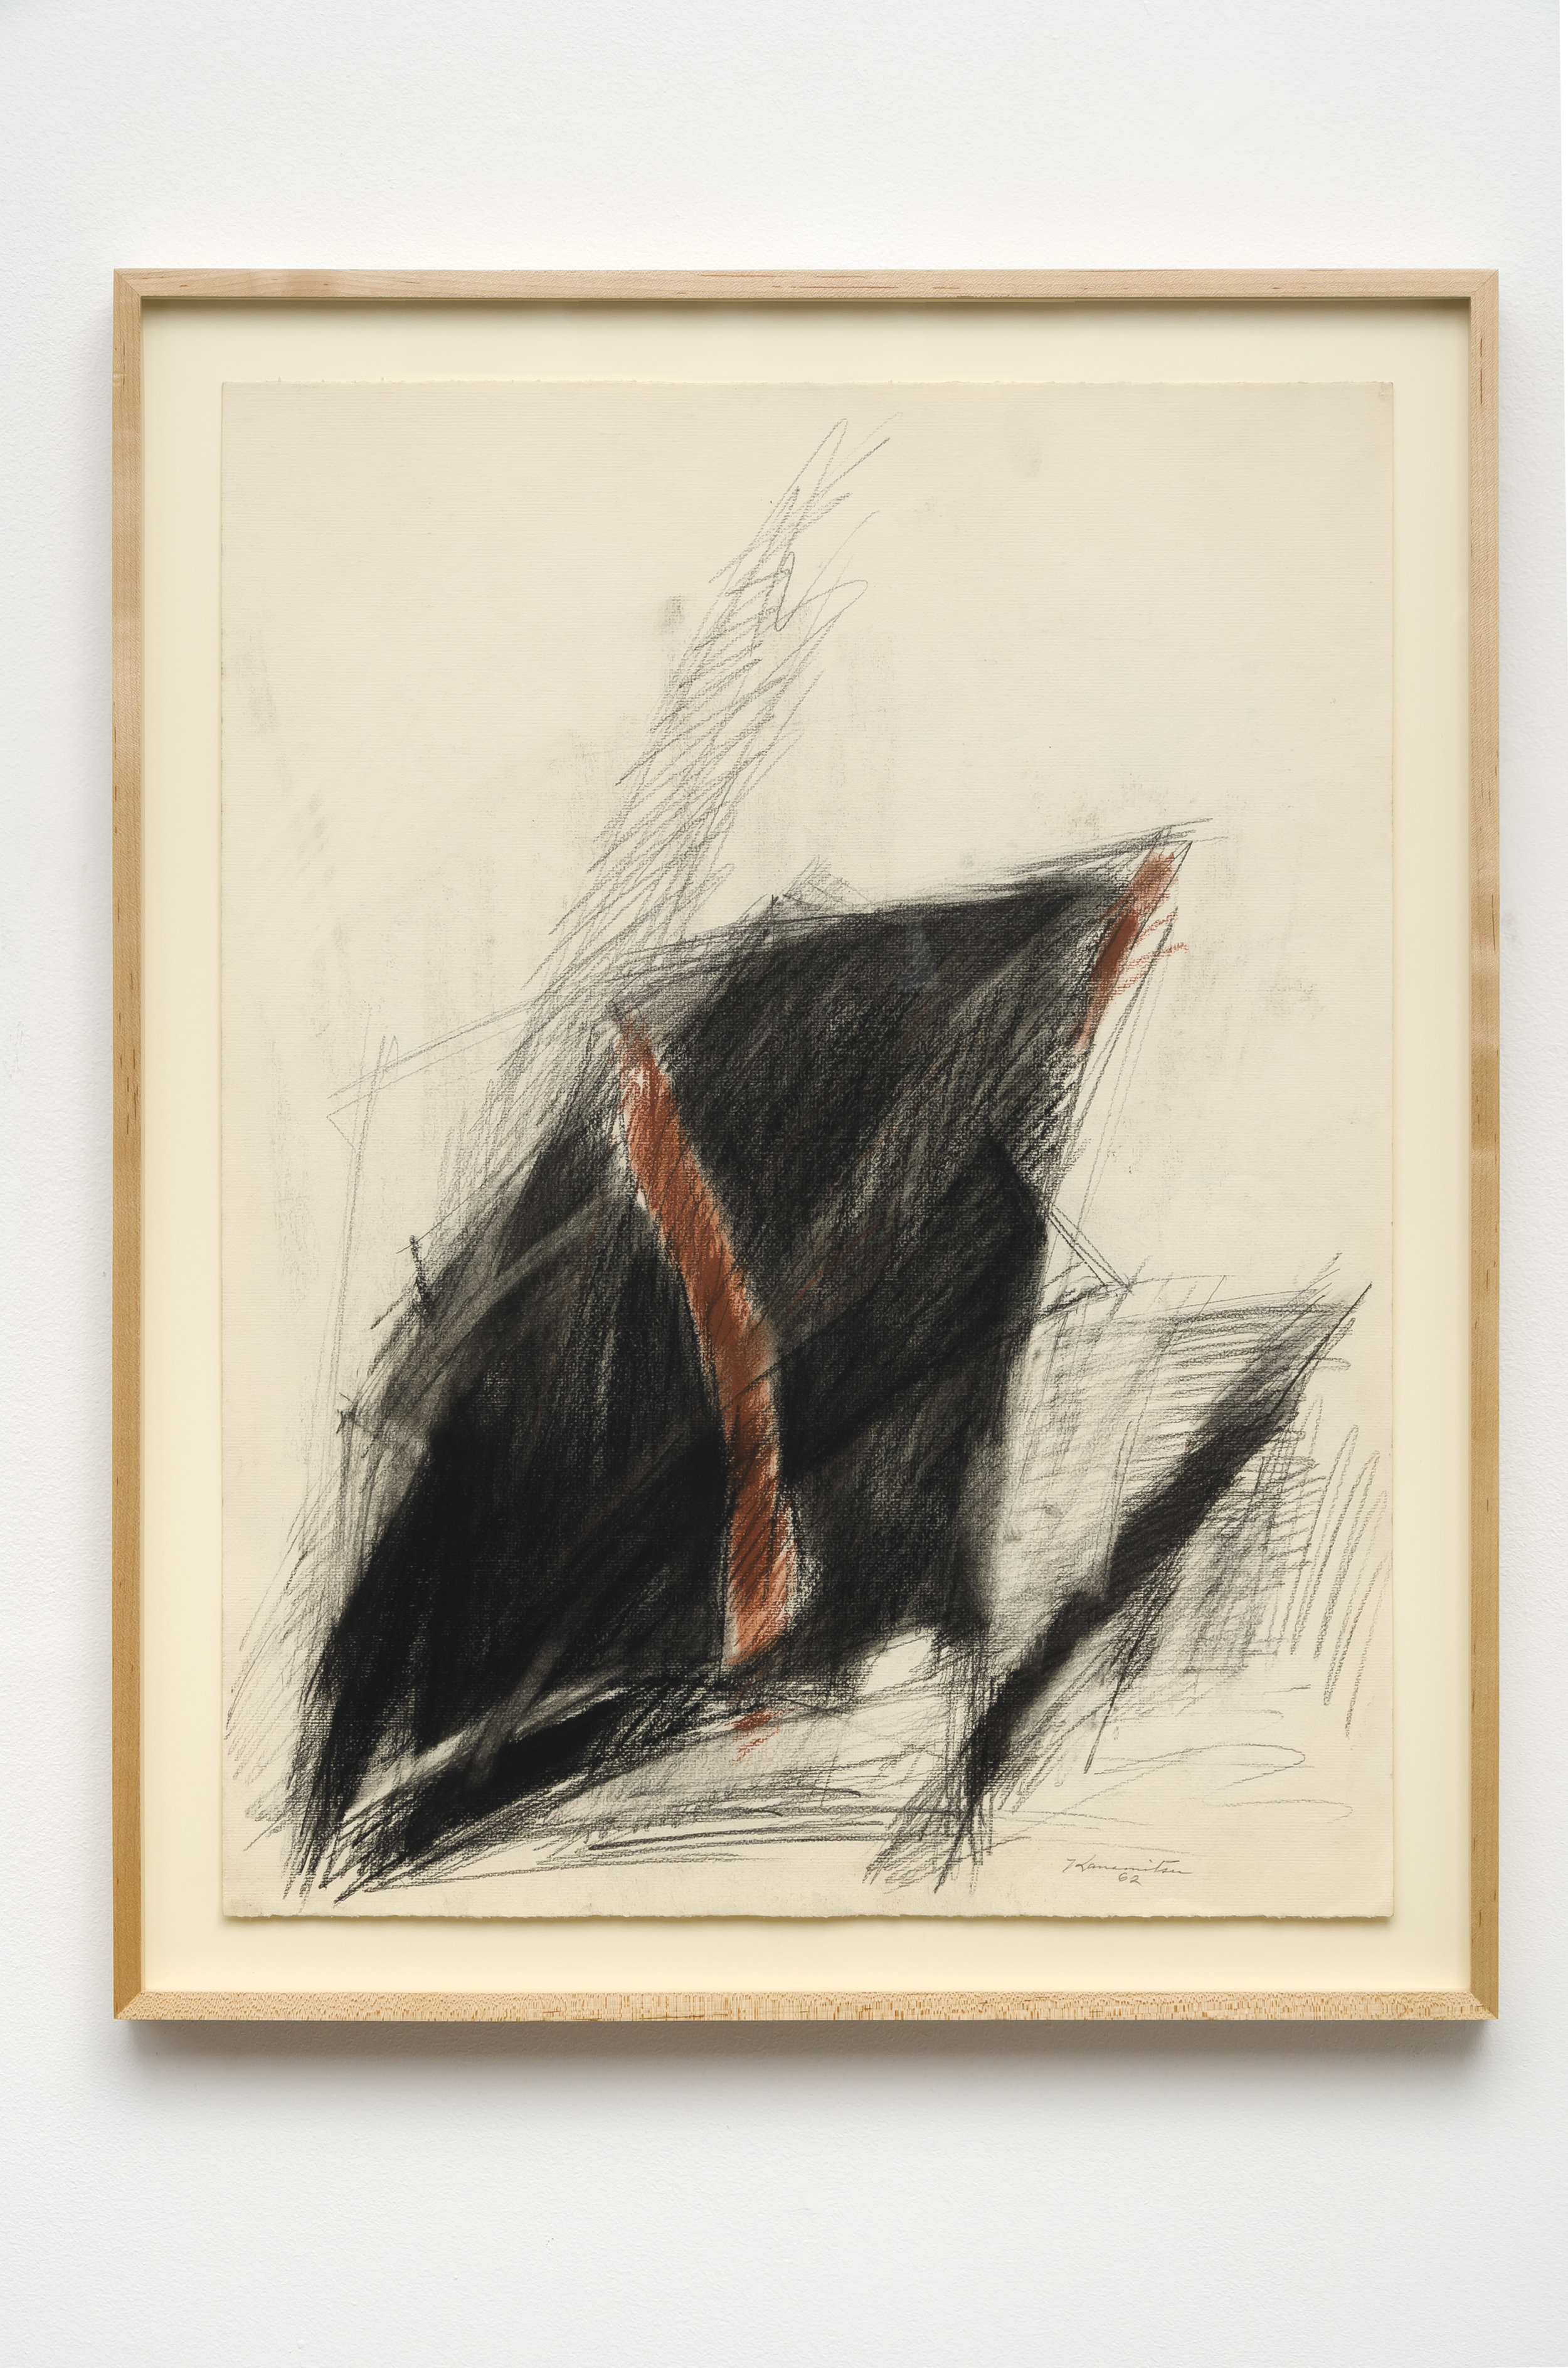 Untitled , 1962 graphite and pastel on paper 30 x 23.5 inches; 76.2 x 59.7 centimeters